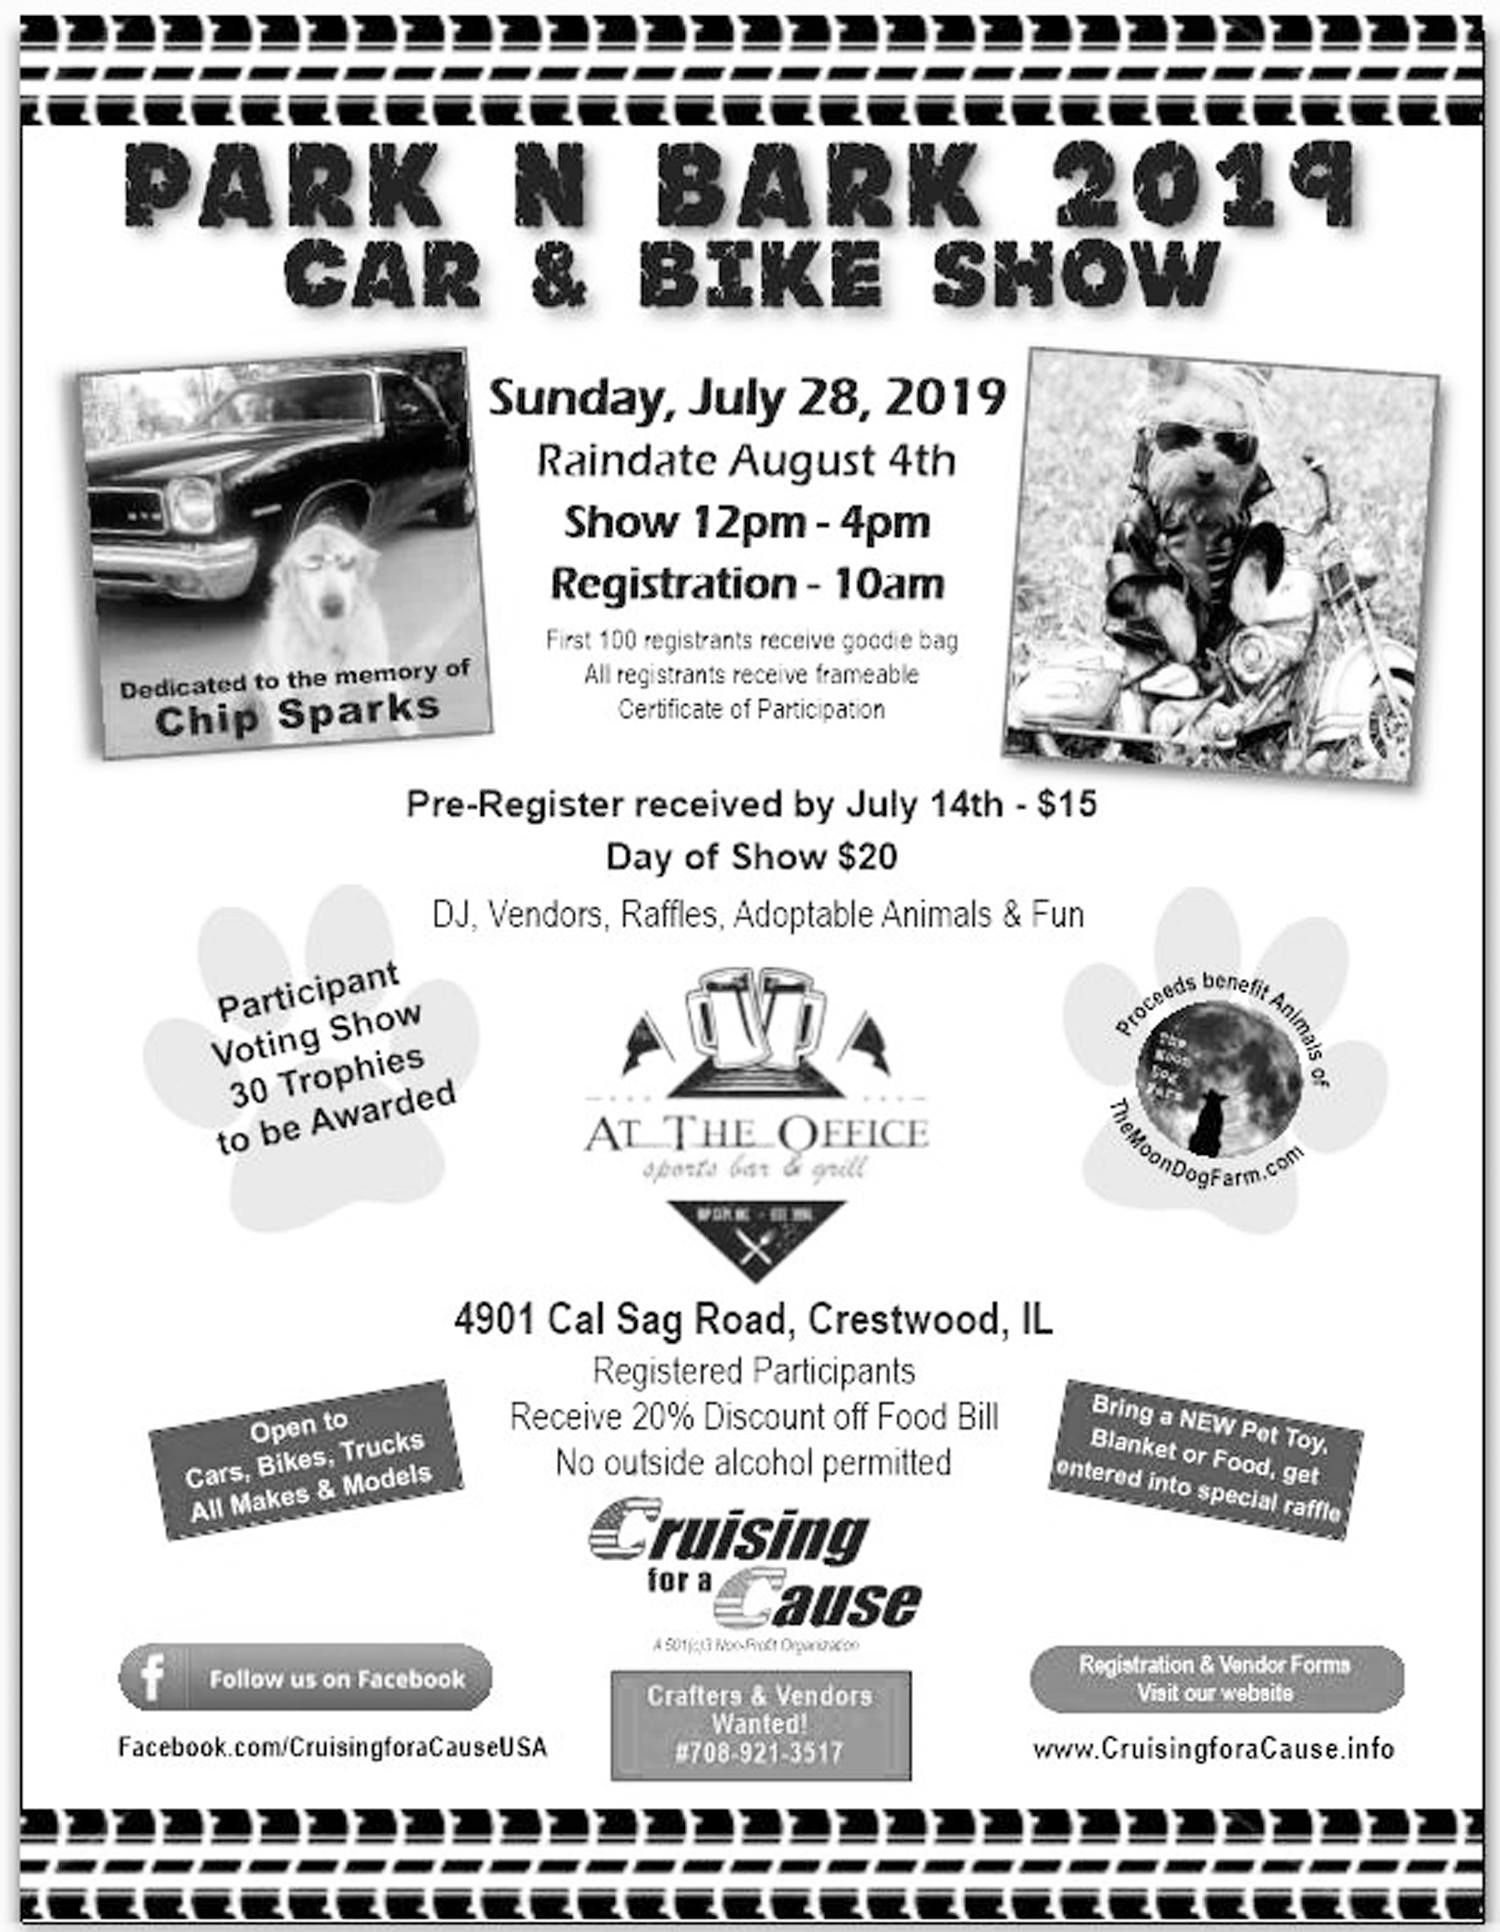 Park N Bark Car and Bike Show @ At The Office